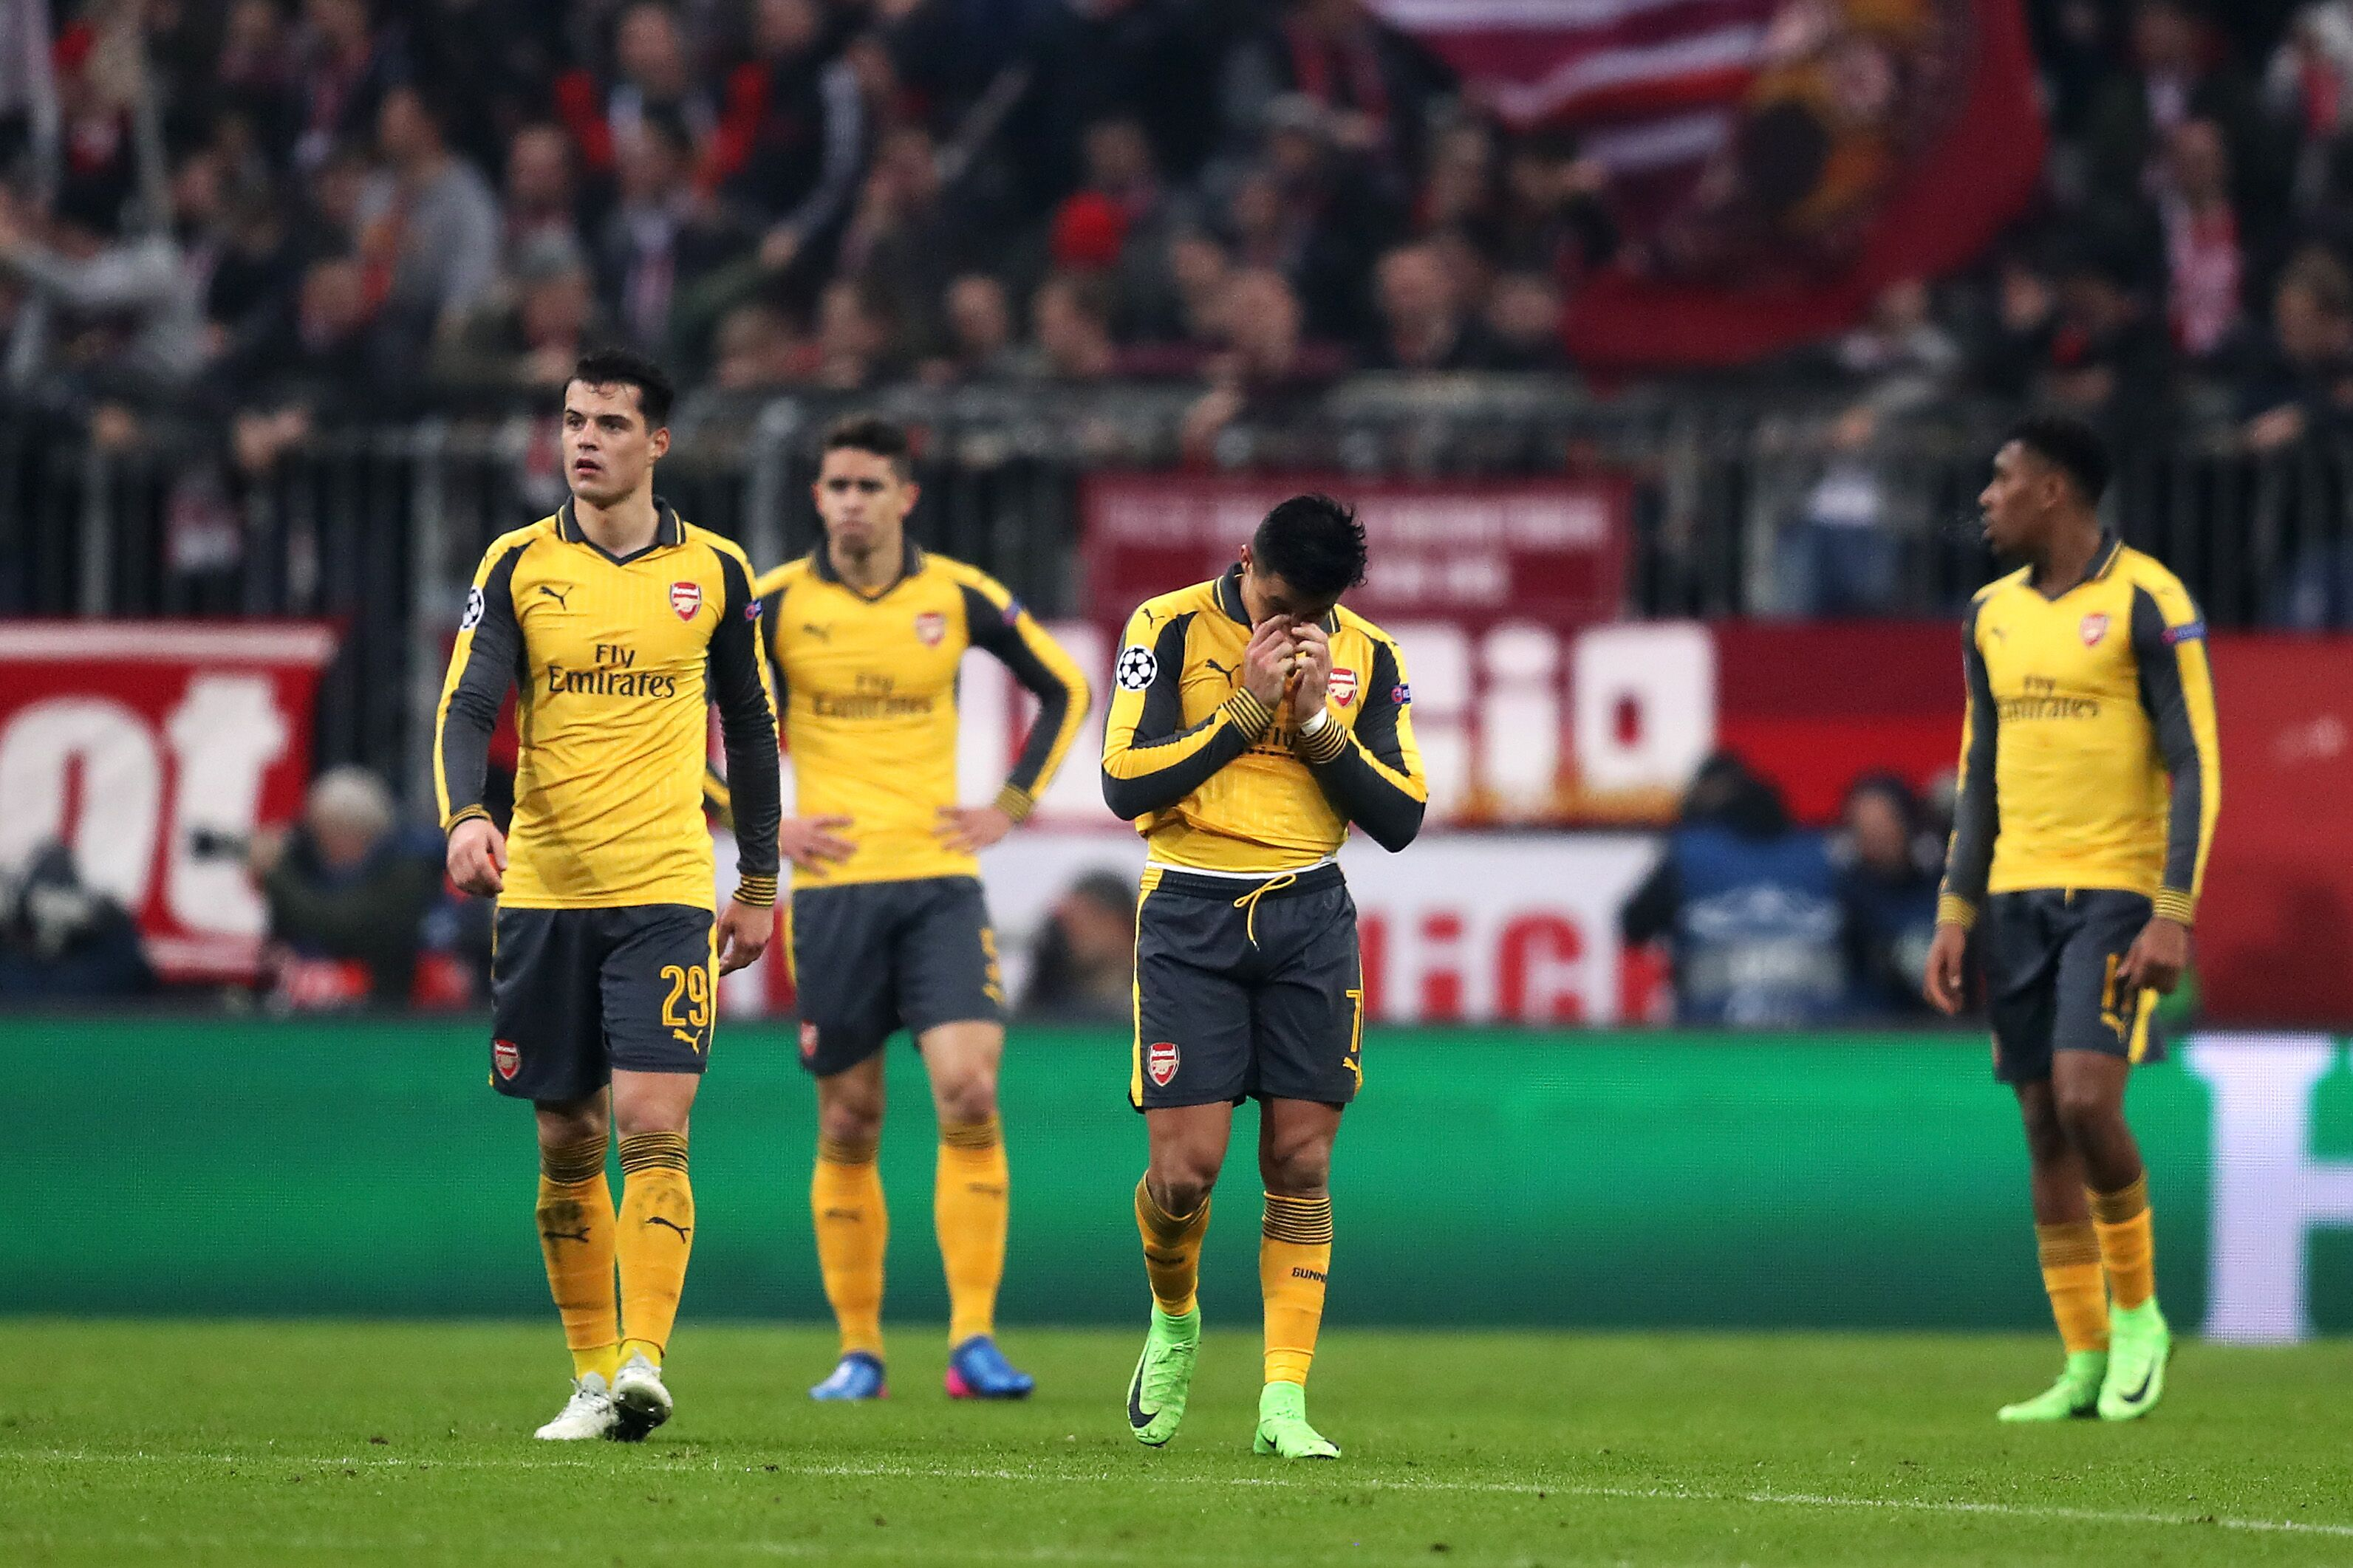 arsenal vs bayern - photo #29